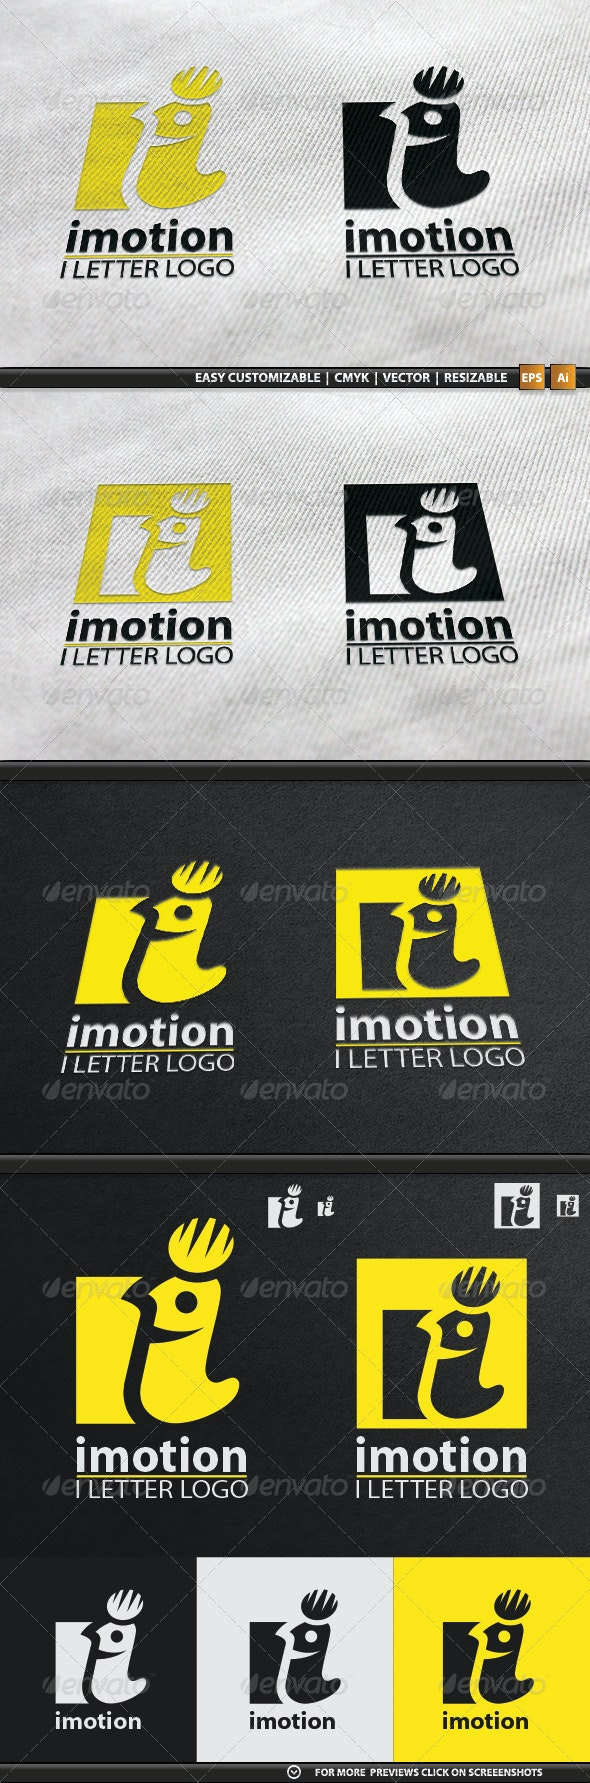 I Letter Aka Imotion Logo Template - Letters Logo Templates